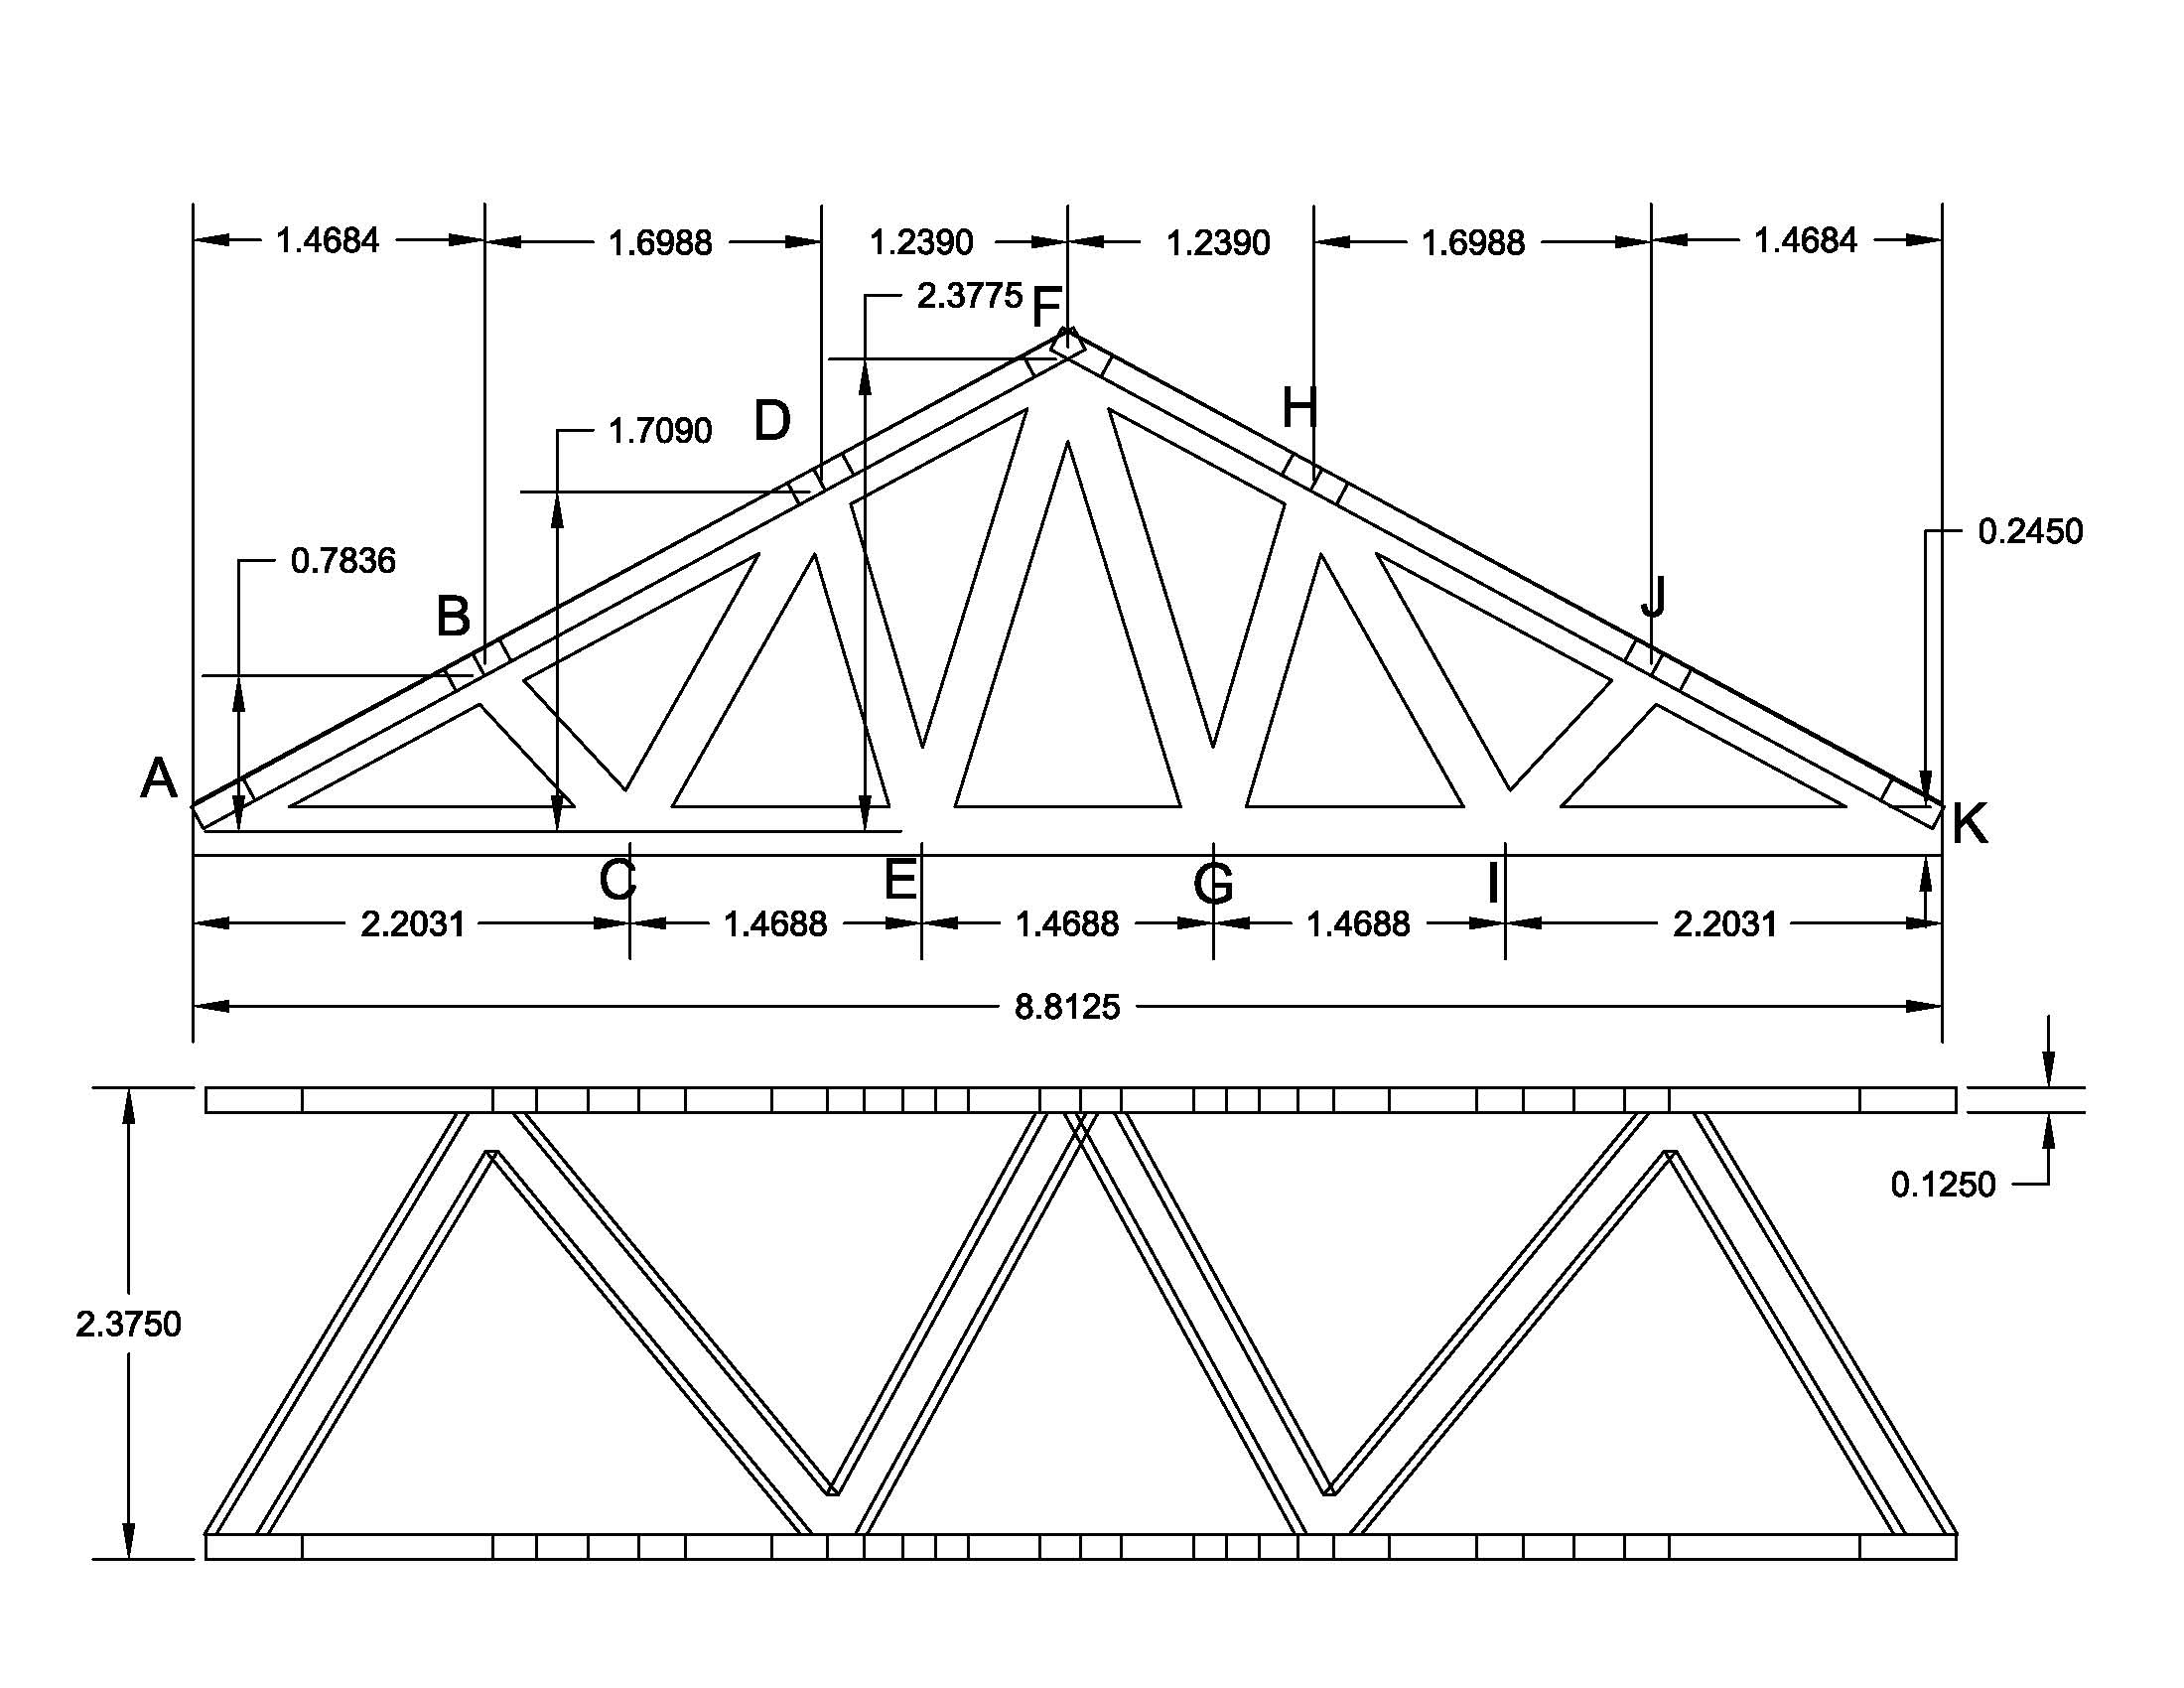 here is the autocad file of the truss